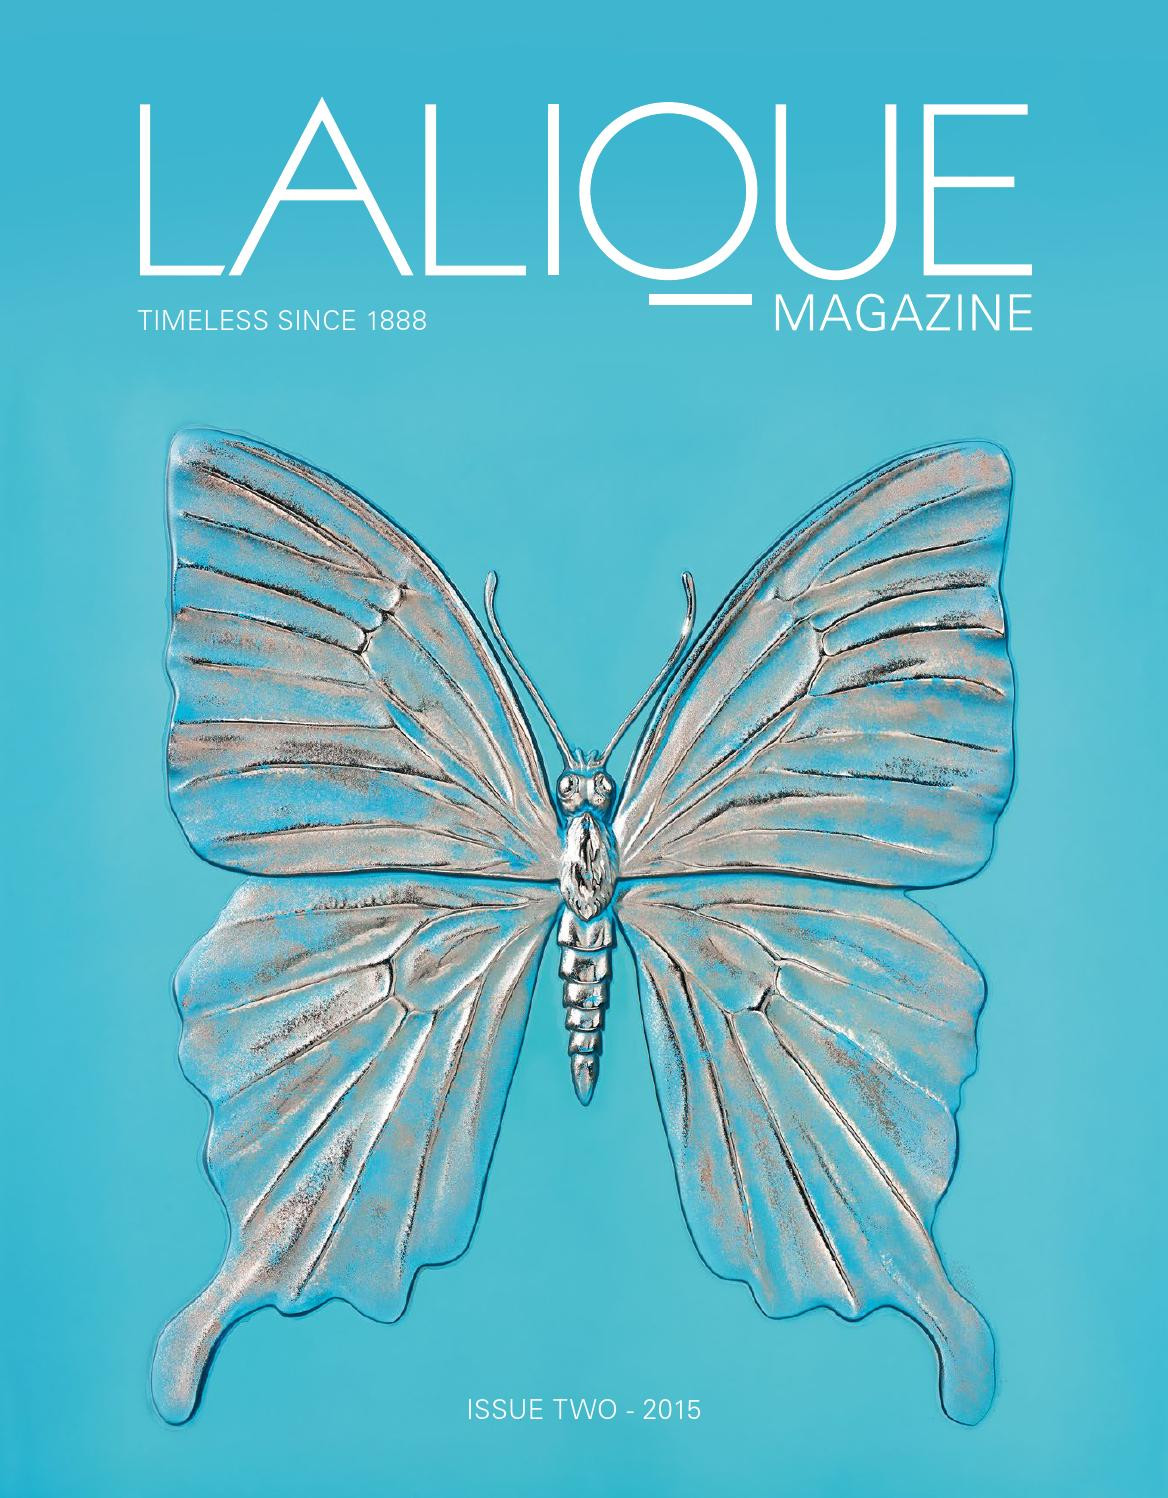 lenox fine crystal vase of lalique magazine na2 english by lalique official issuu pertaining to page 1